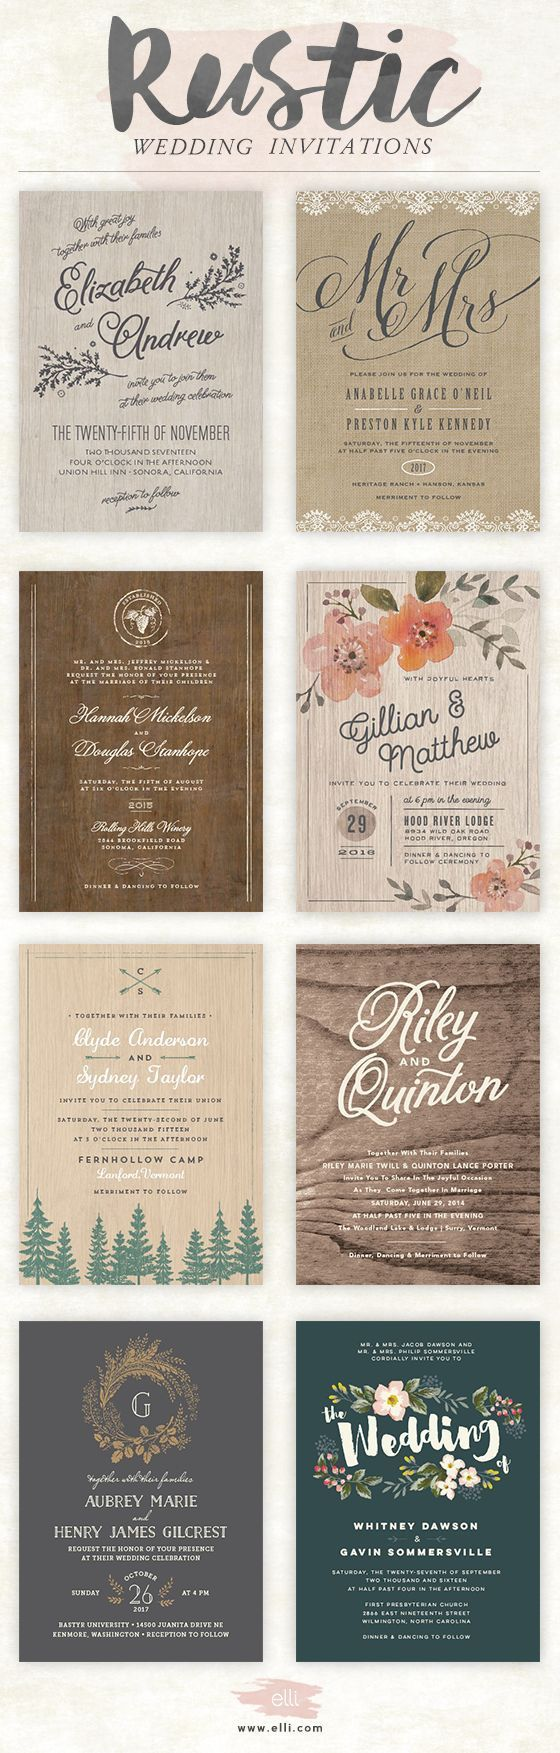 wedding renewal invitation ideas%0A Rustic wedding invitations    Bella Collina Weddings